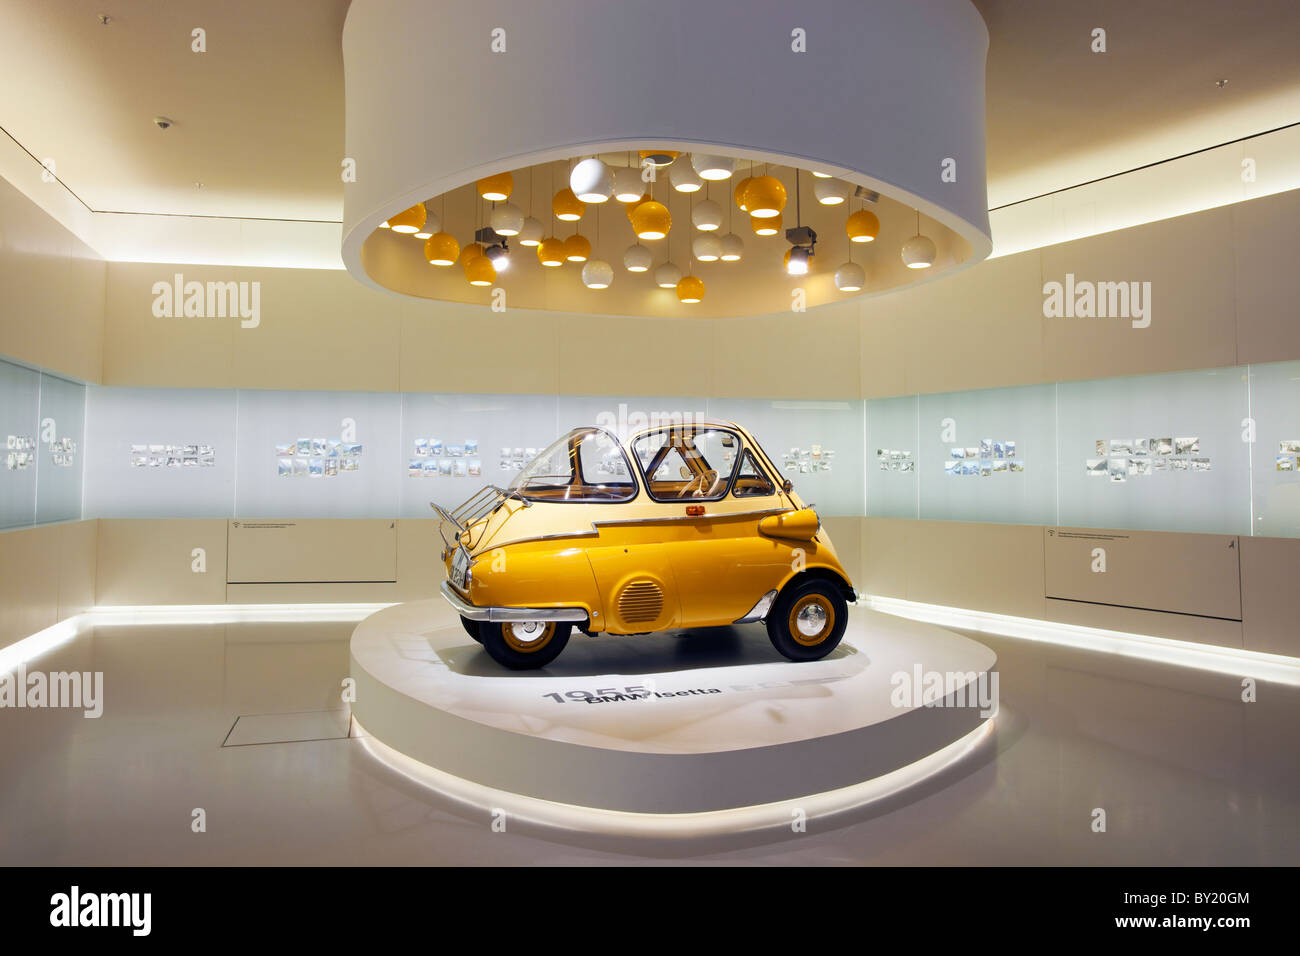 bmw isetta stock photos bmw isetta stock images alamy. Black Bedroom Furniture Sets. Home Design Ideas